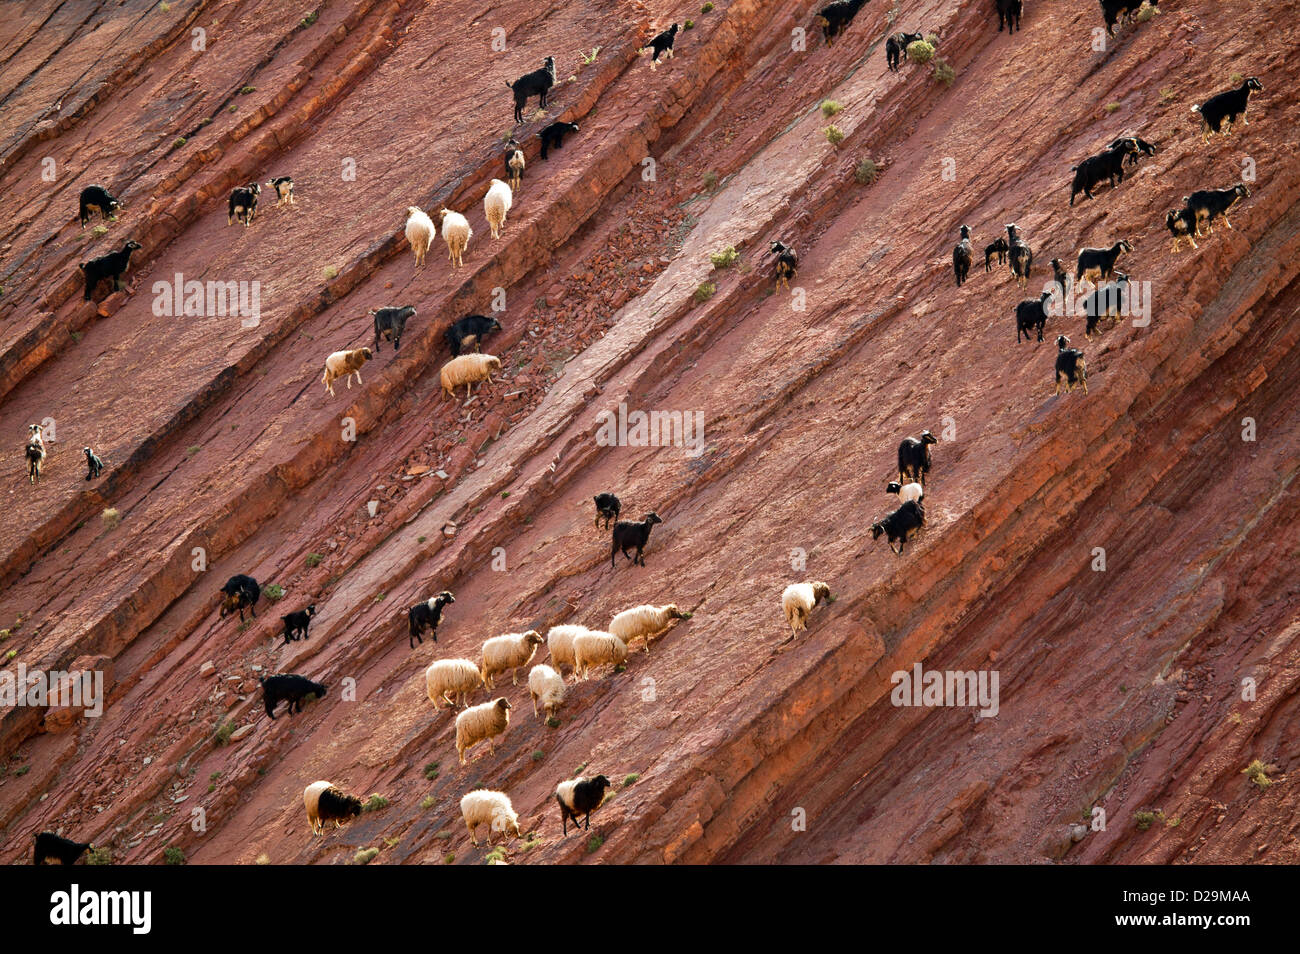 SHEEP AND GOAT FLOCKS CROSSING AND GRAZING ON A SHEER ROCK FACE IN MOROCCO - Stock Image